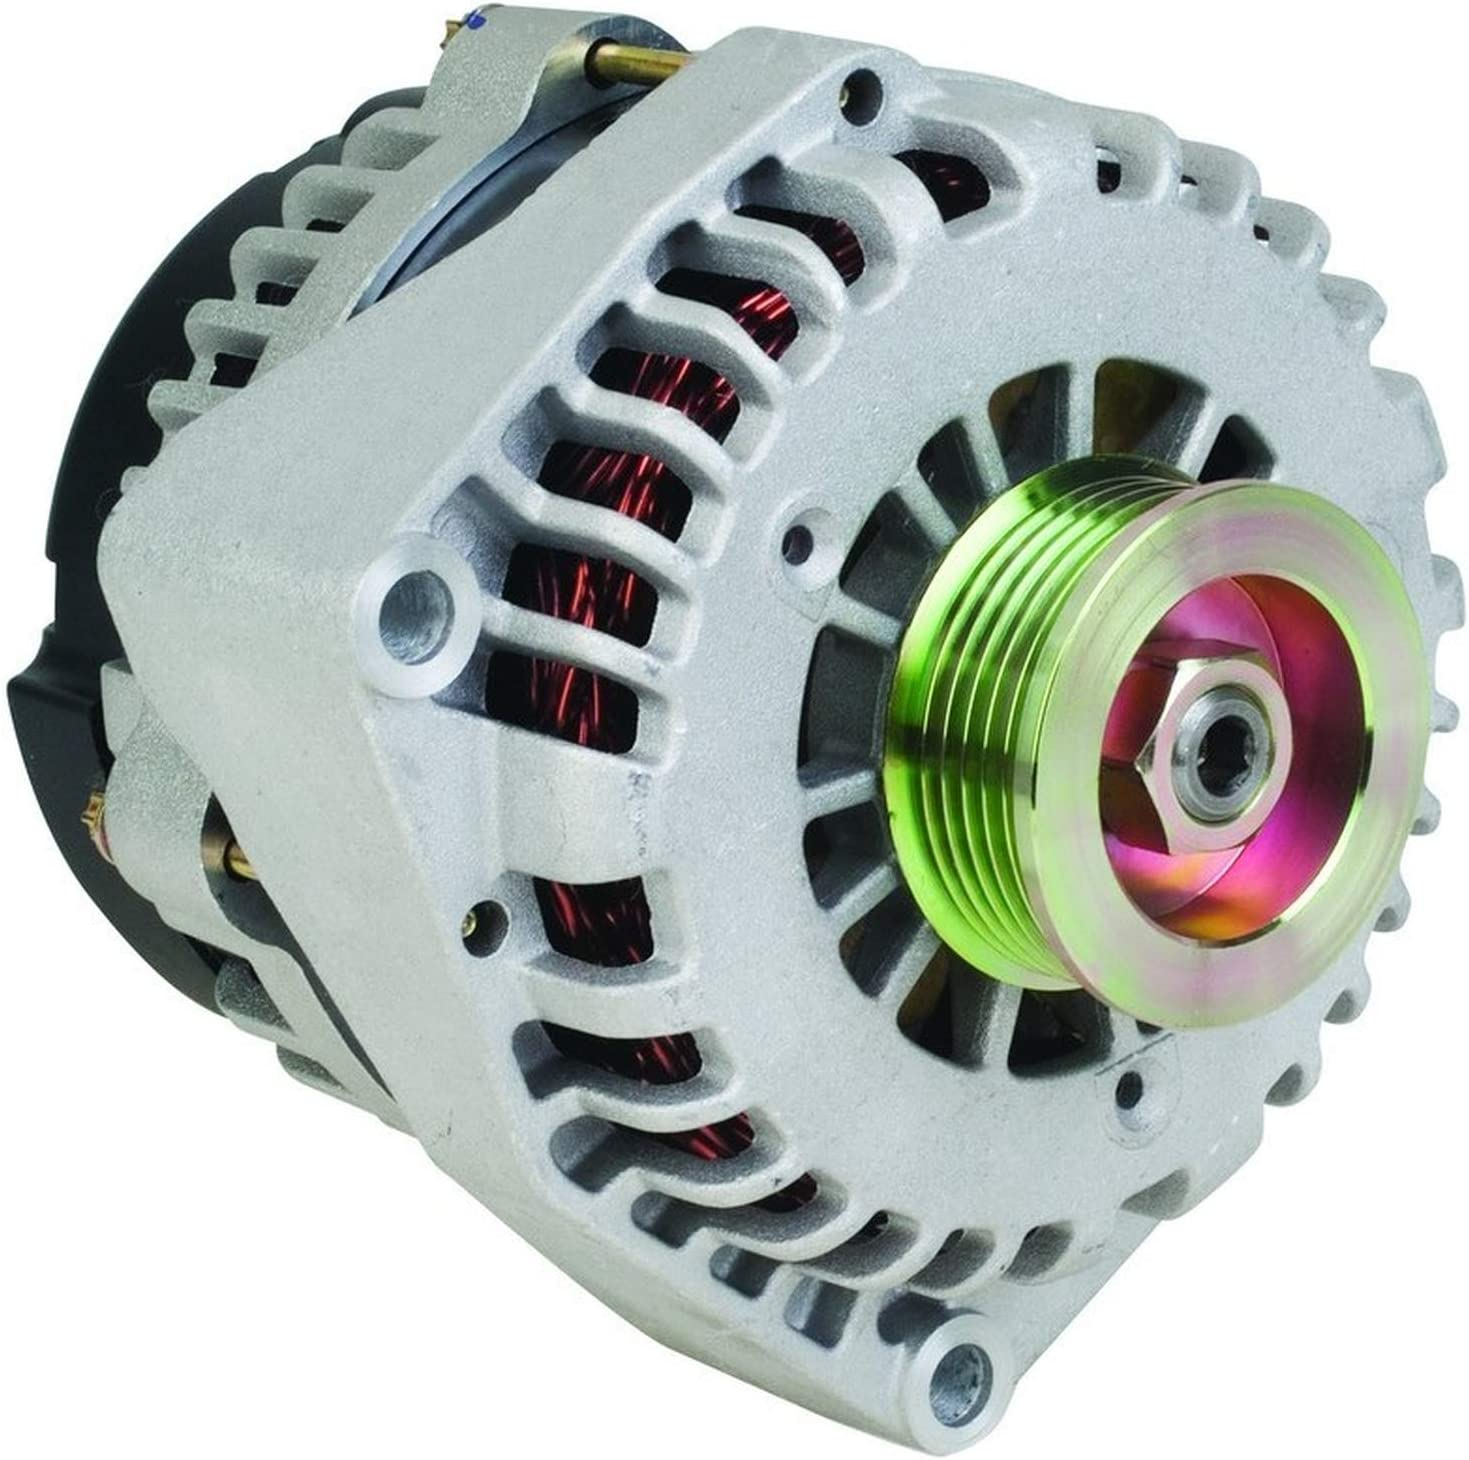 New 160 Amp High Output Cadil 2007-11 For Finally popular brand Year-end gift Replacement Alternator